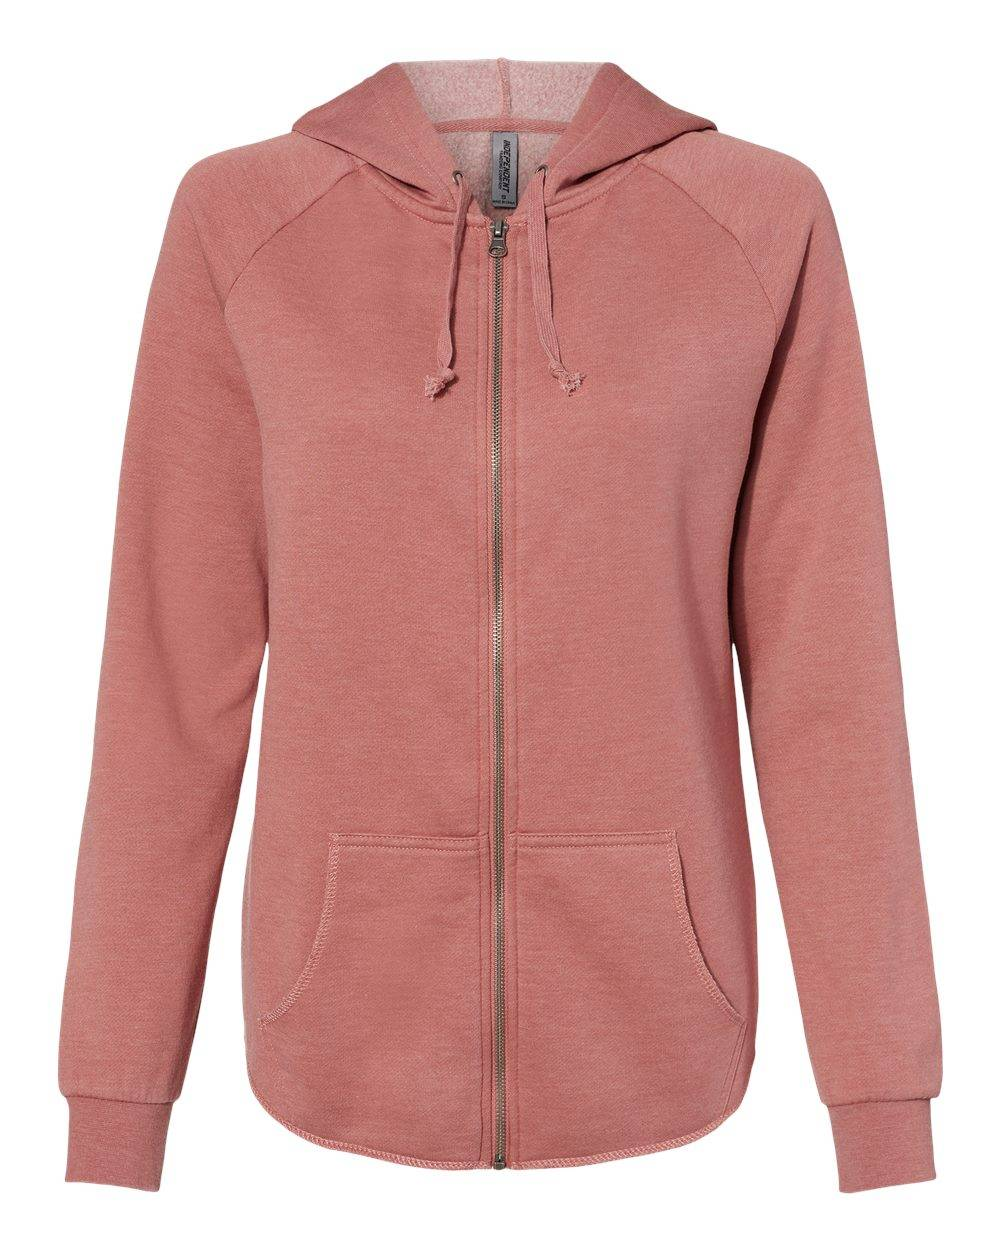 Independent Trading Co. - Women's California Wave Wash Full-Zip Hooded Sweatshirt - PRM2500Z - Dusty Rose - Large